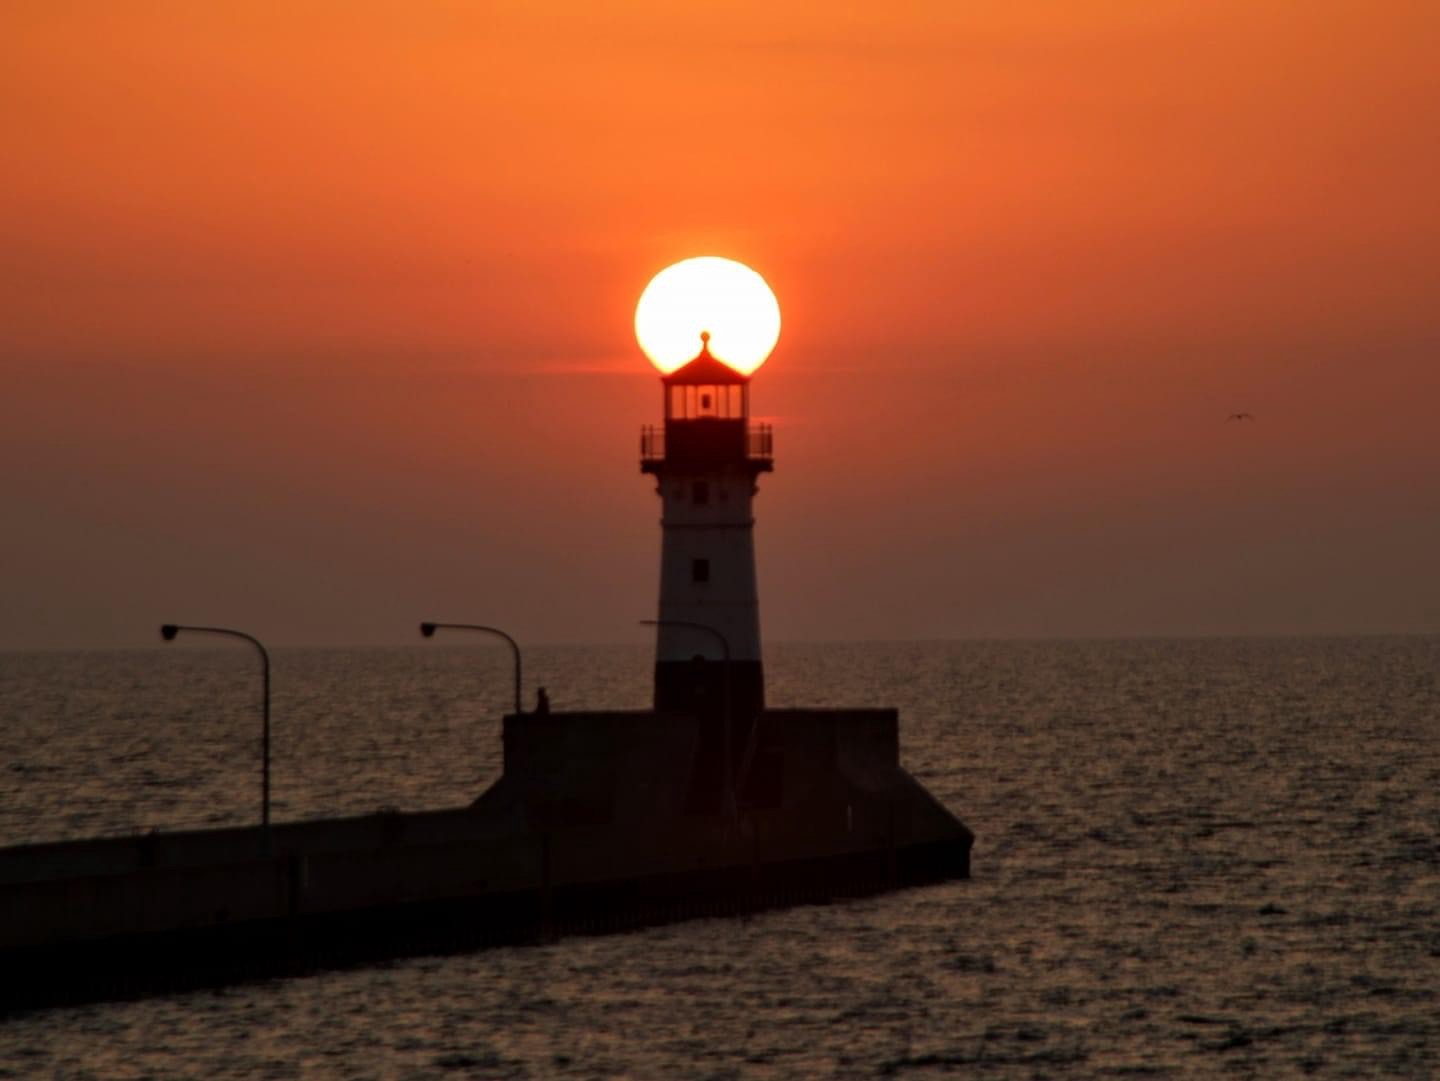 The Sun rising behind the lighthouse on the Duluth Lighthouse on Lake Superior MN